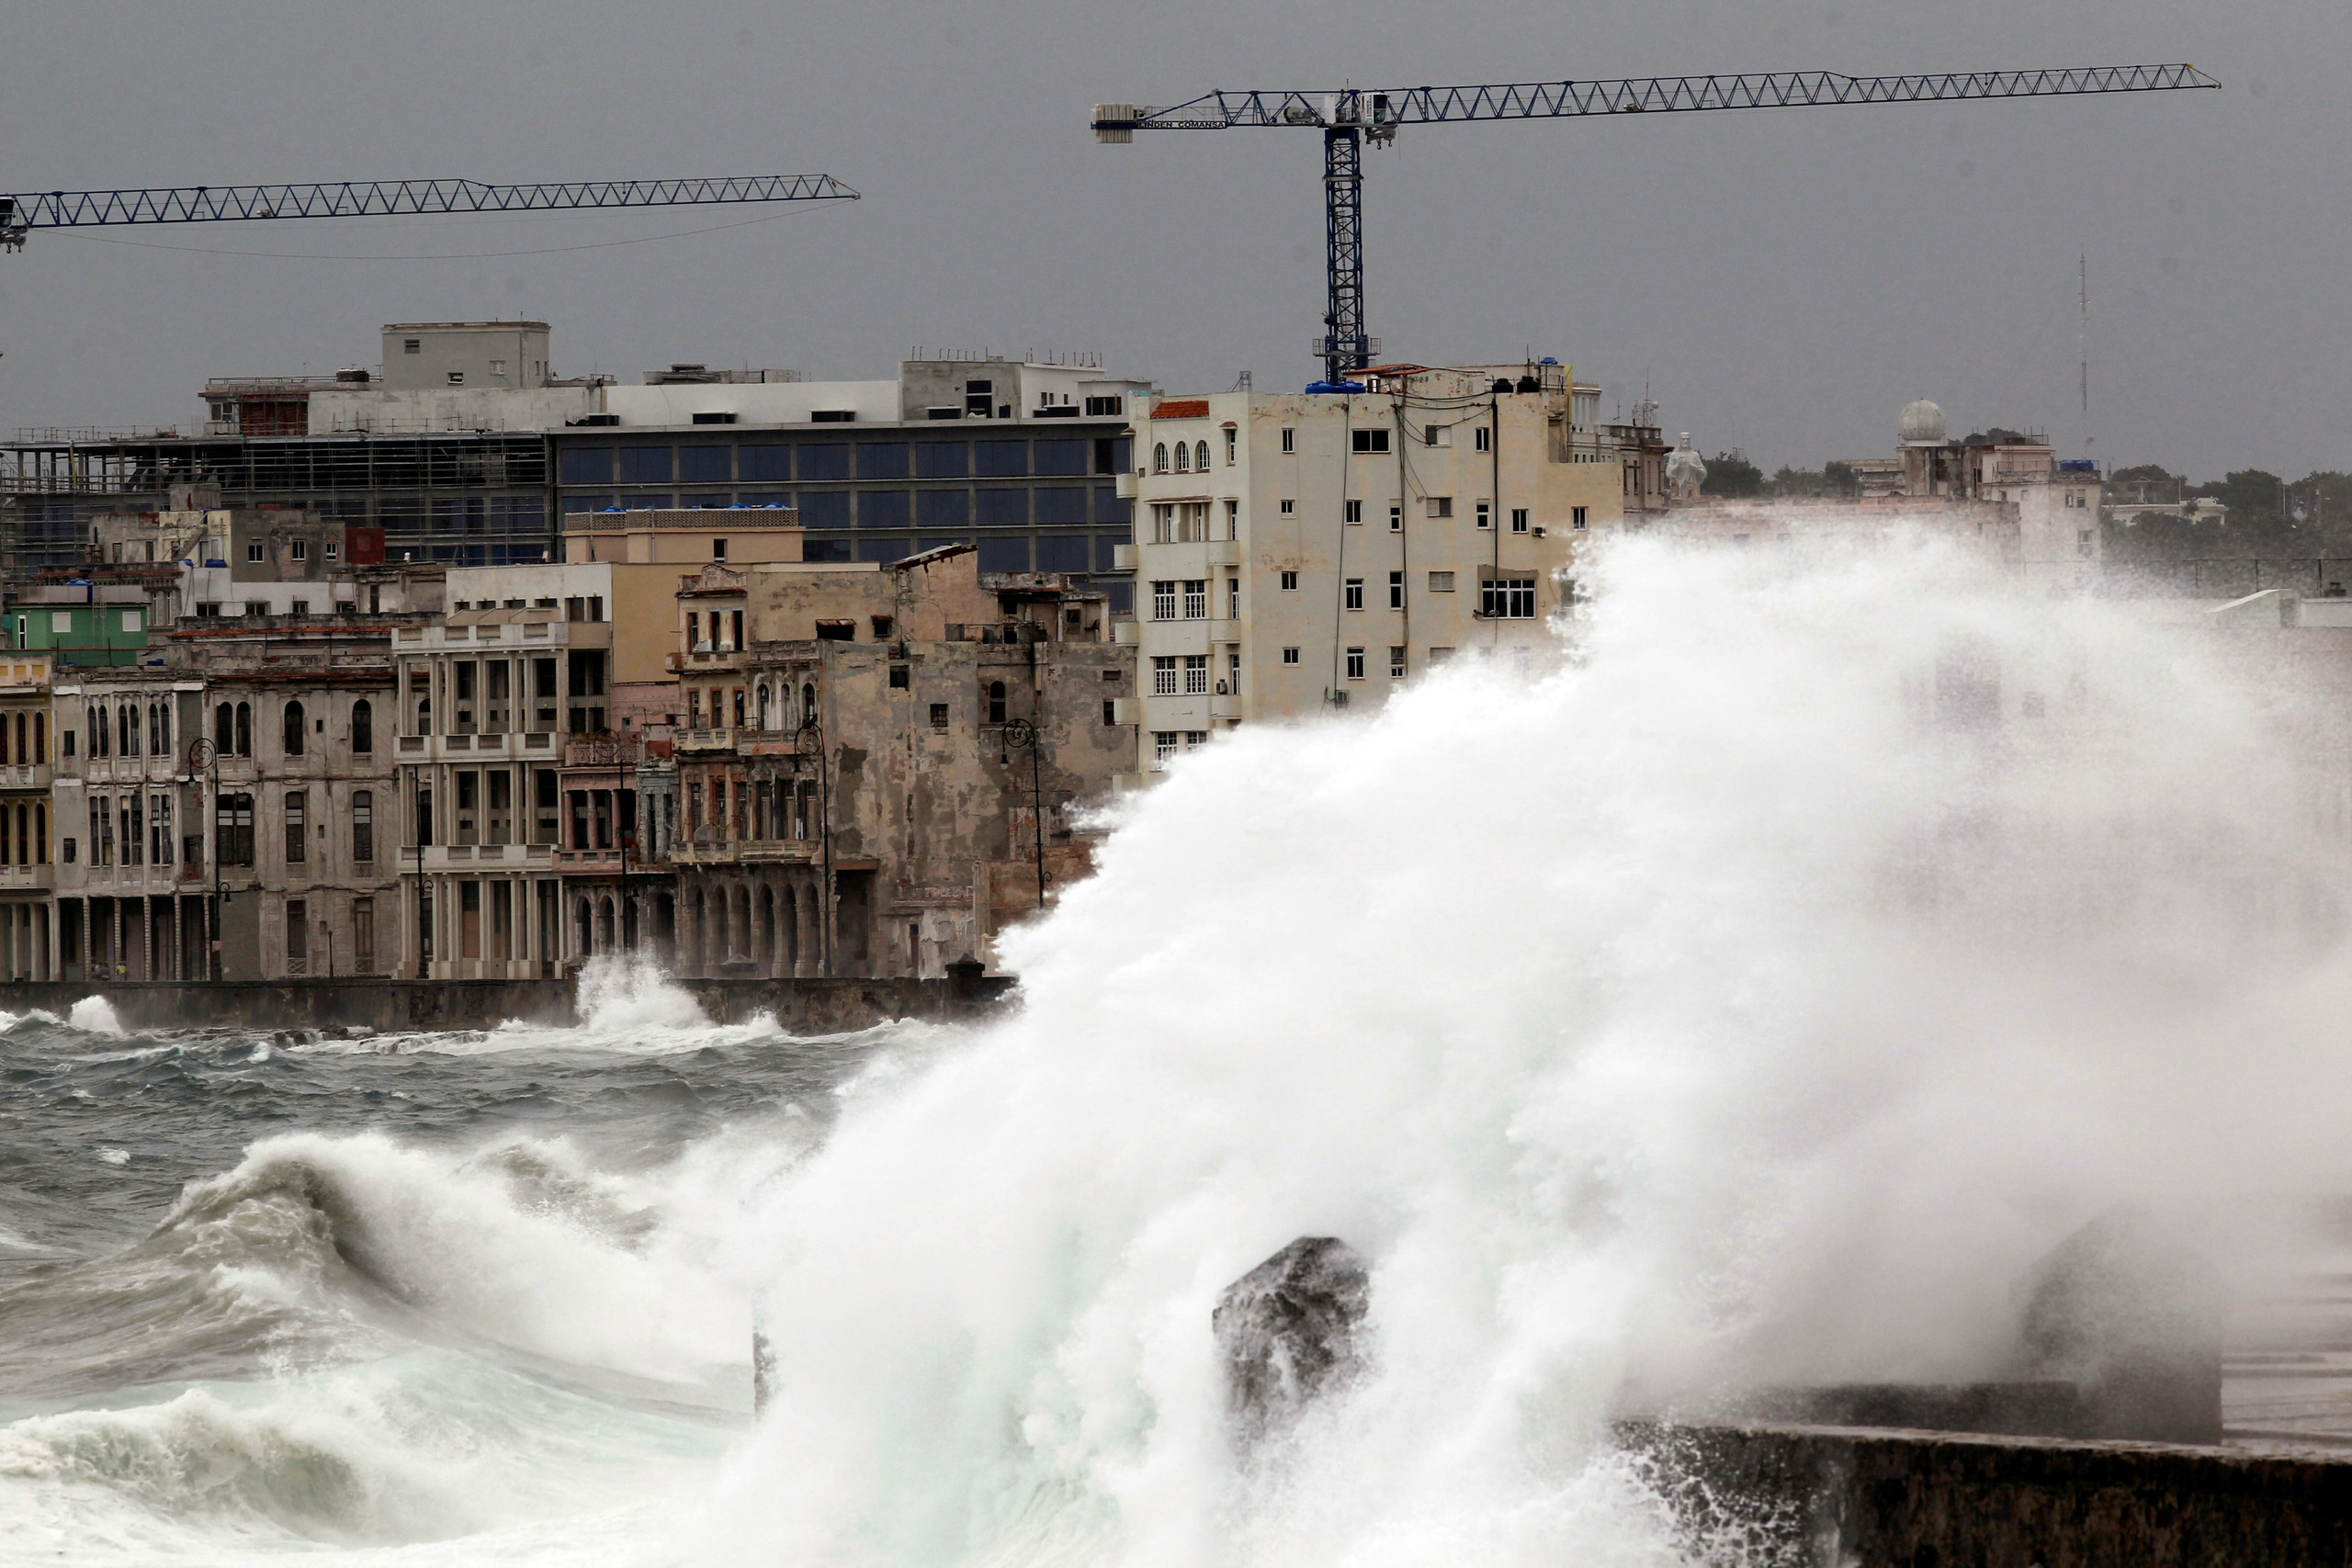 Waves crash against the seafront boulevard El Malecon ahead of the passing of Hurricane Irma, in Havana, Cuba September 9, 2017. REUTERS/Stringer NO SALES. NO ARCHIVES